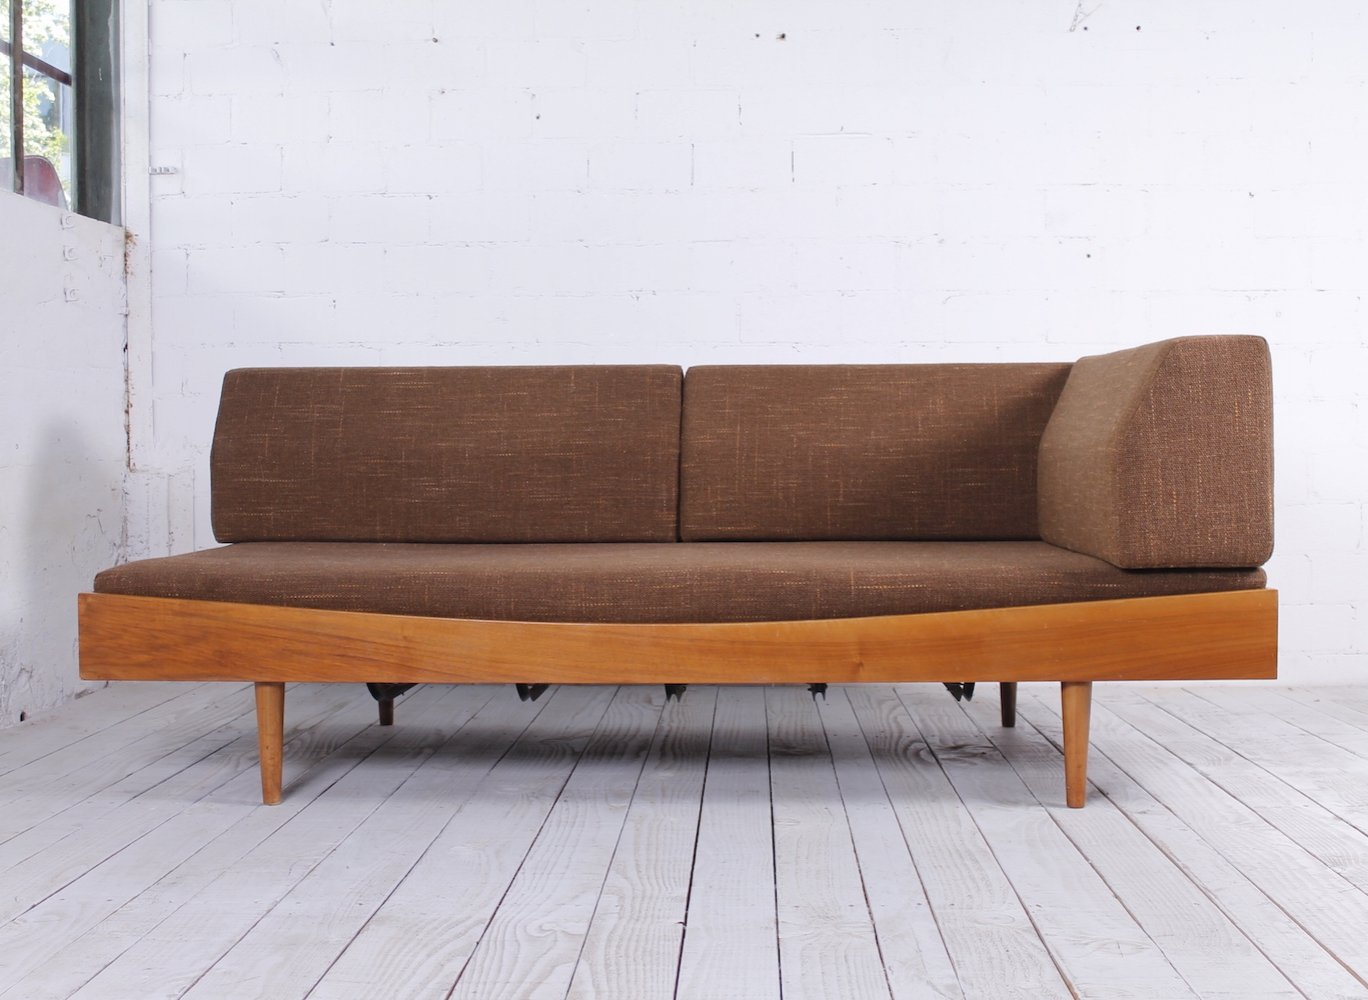 Vintage German Daybed with loose backrests, 1960s